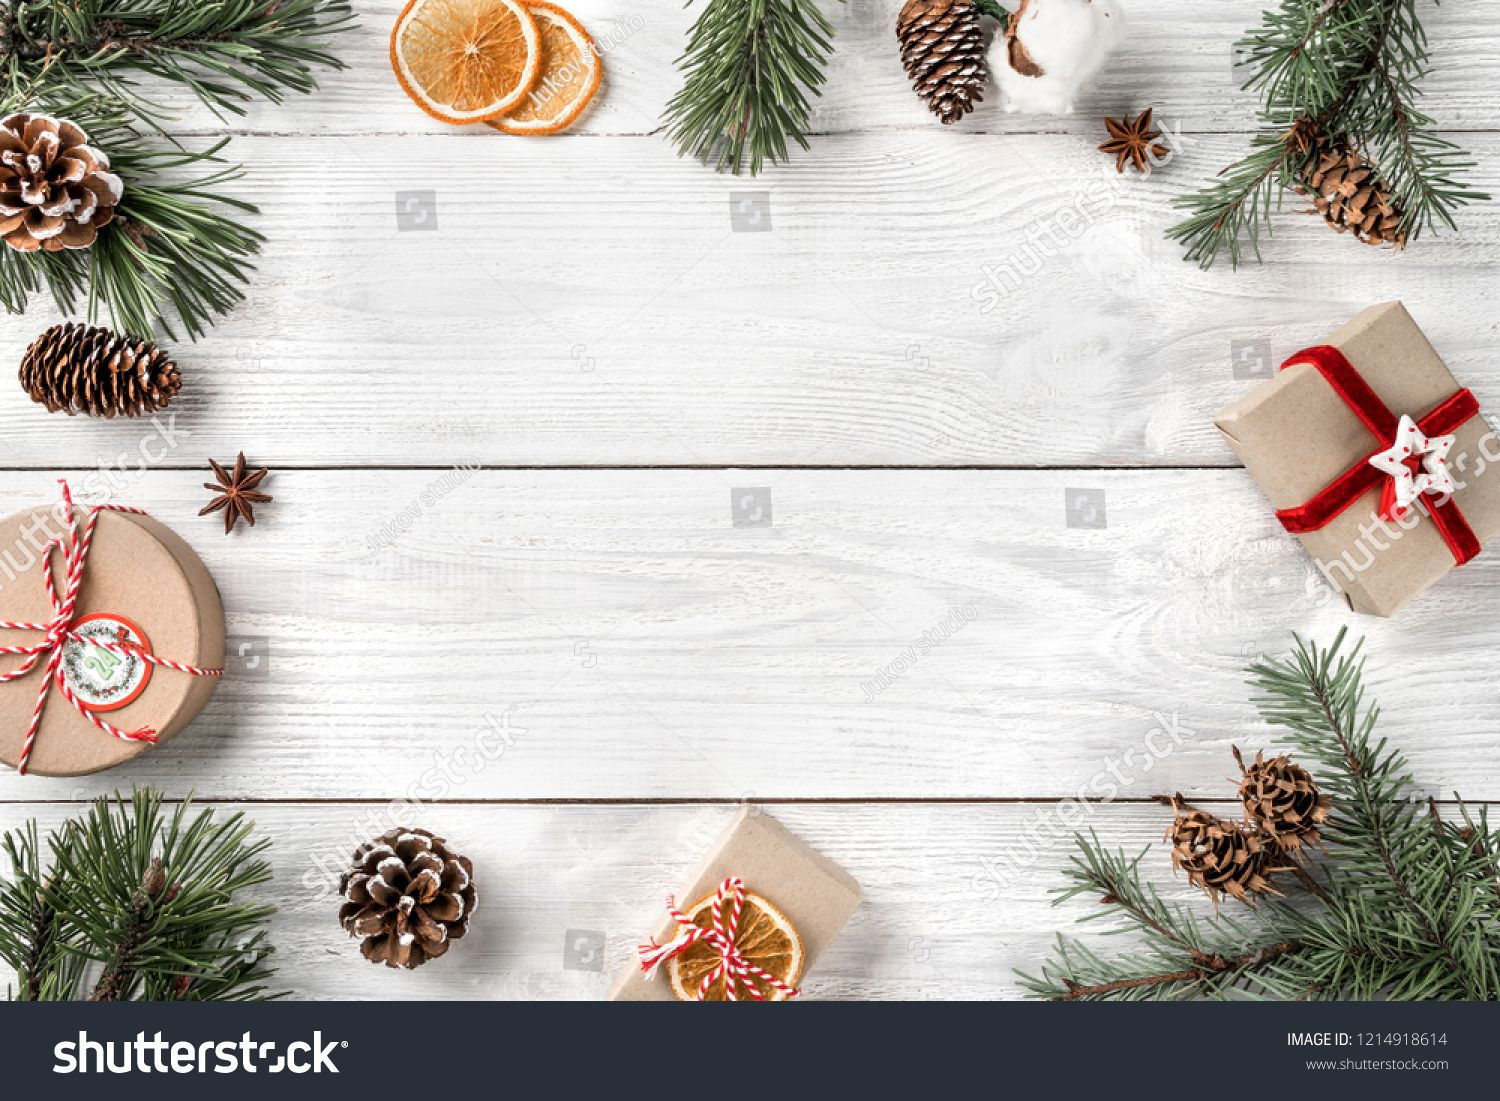 Creative Frame Made Of Christmas Tree Branches On White Wooden Background With Gift Boxes Pin How To Make Christmas Tree Christmas Tree Branches Tree Branches